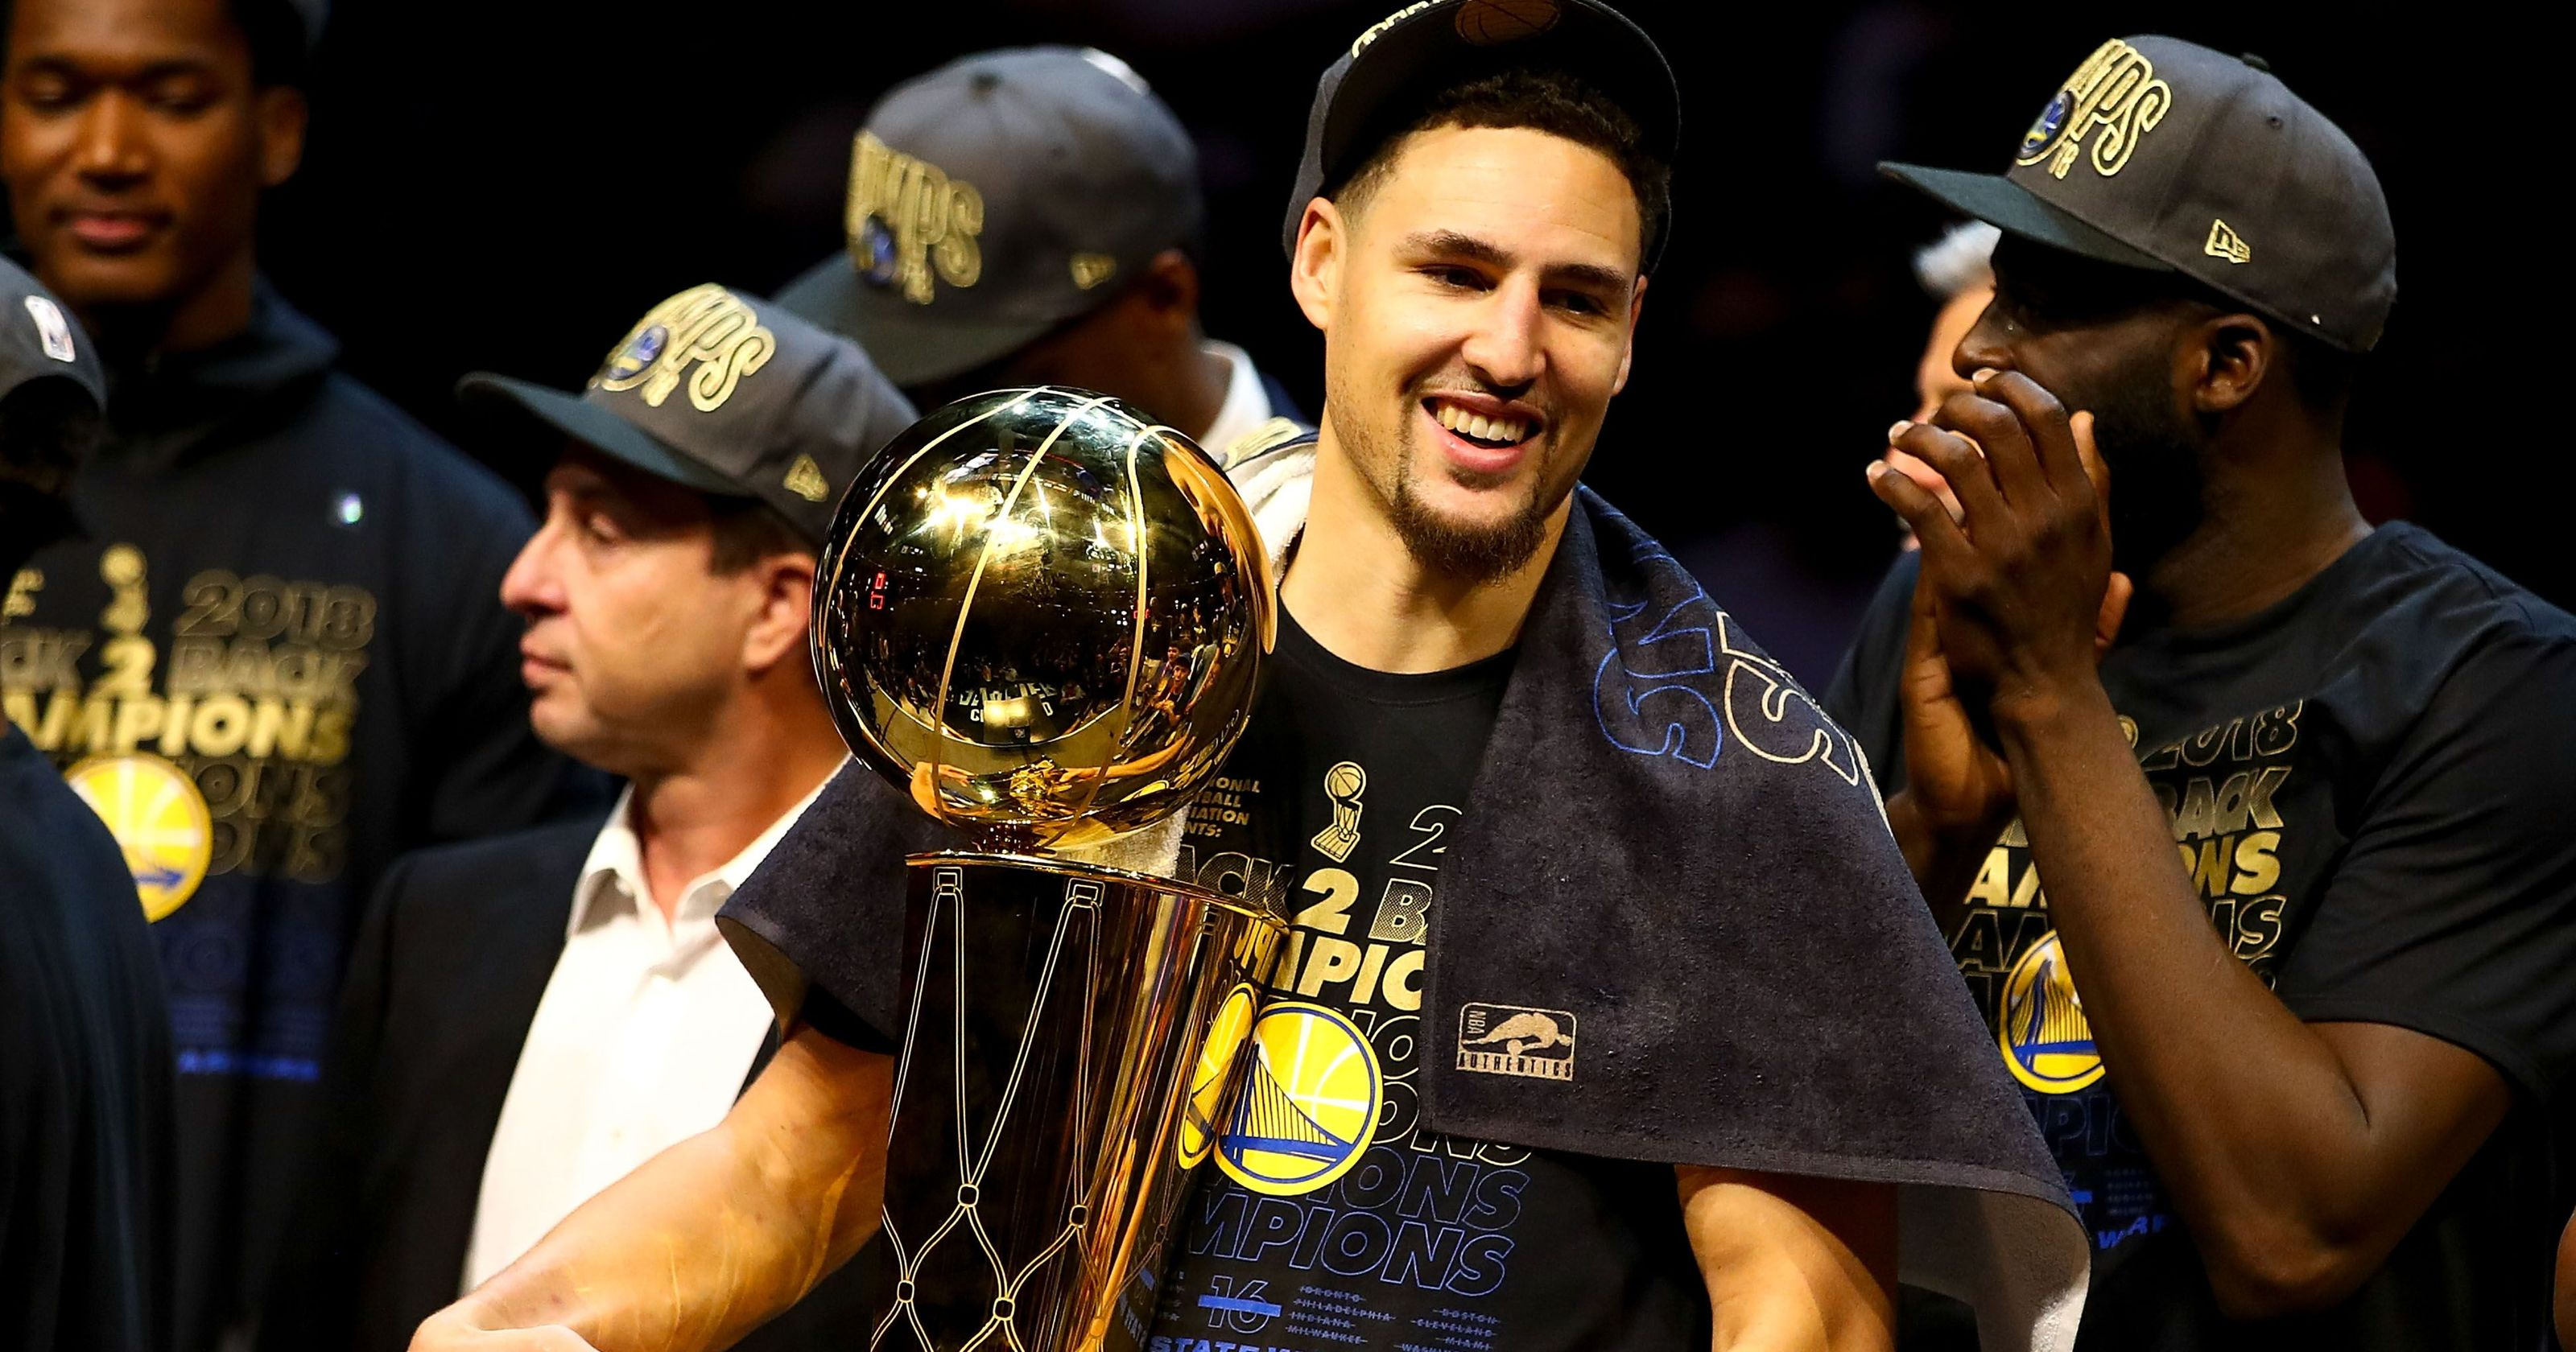 Klay Thompson calls Cavs 'idiots' about 3-1 pettiness